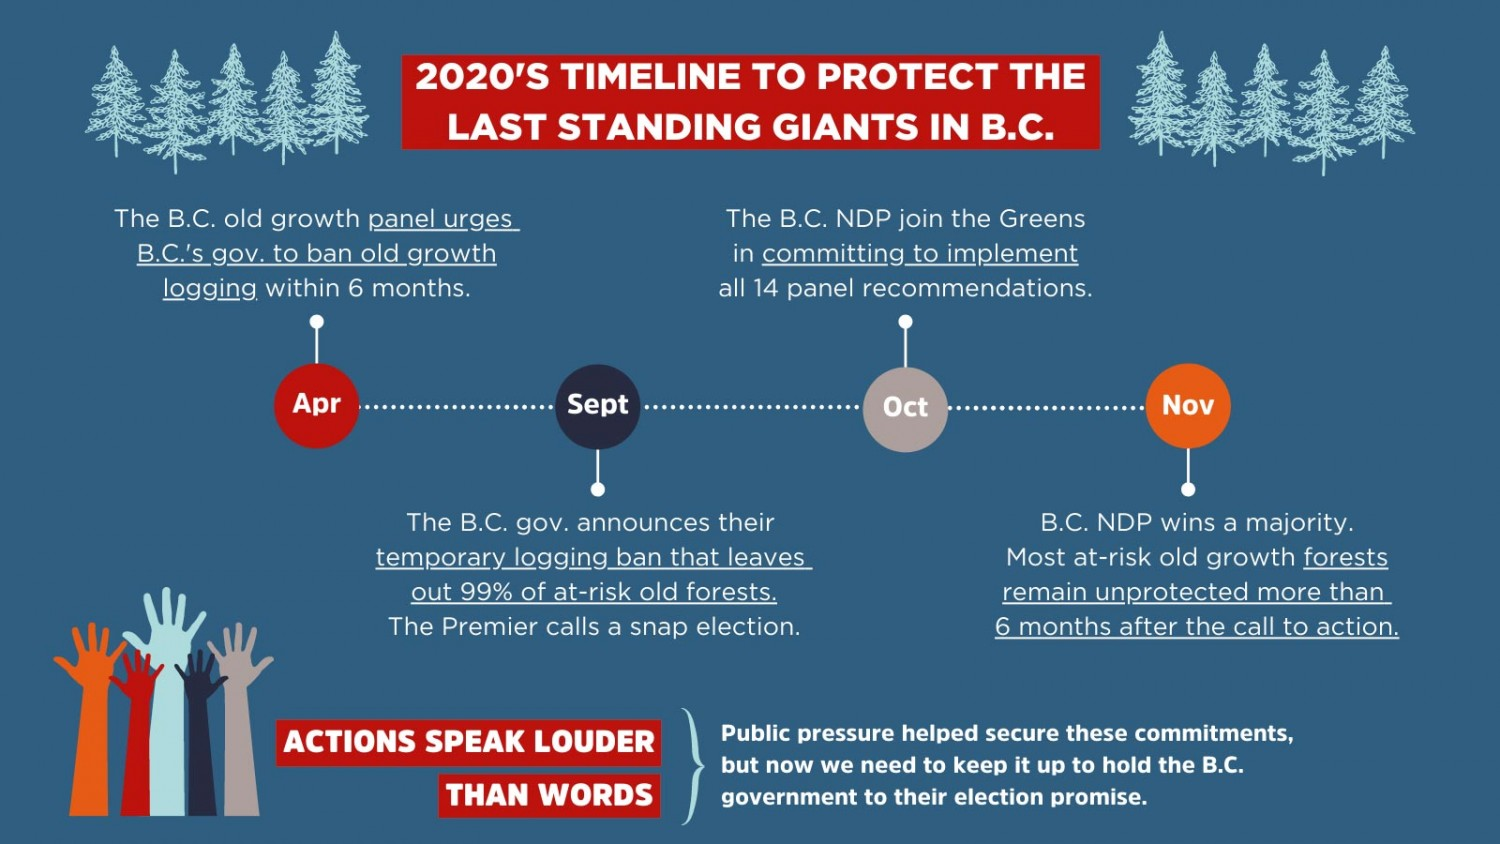 Graphic with 2020's timeline on protecting old growth in B.C.